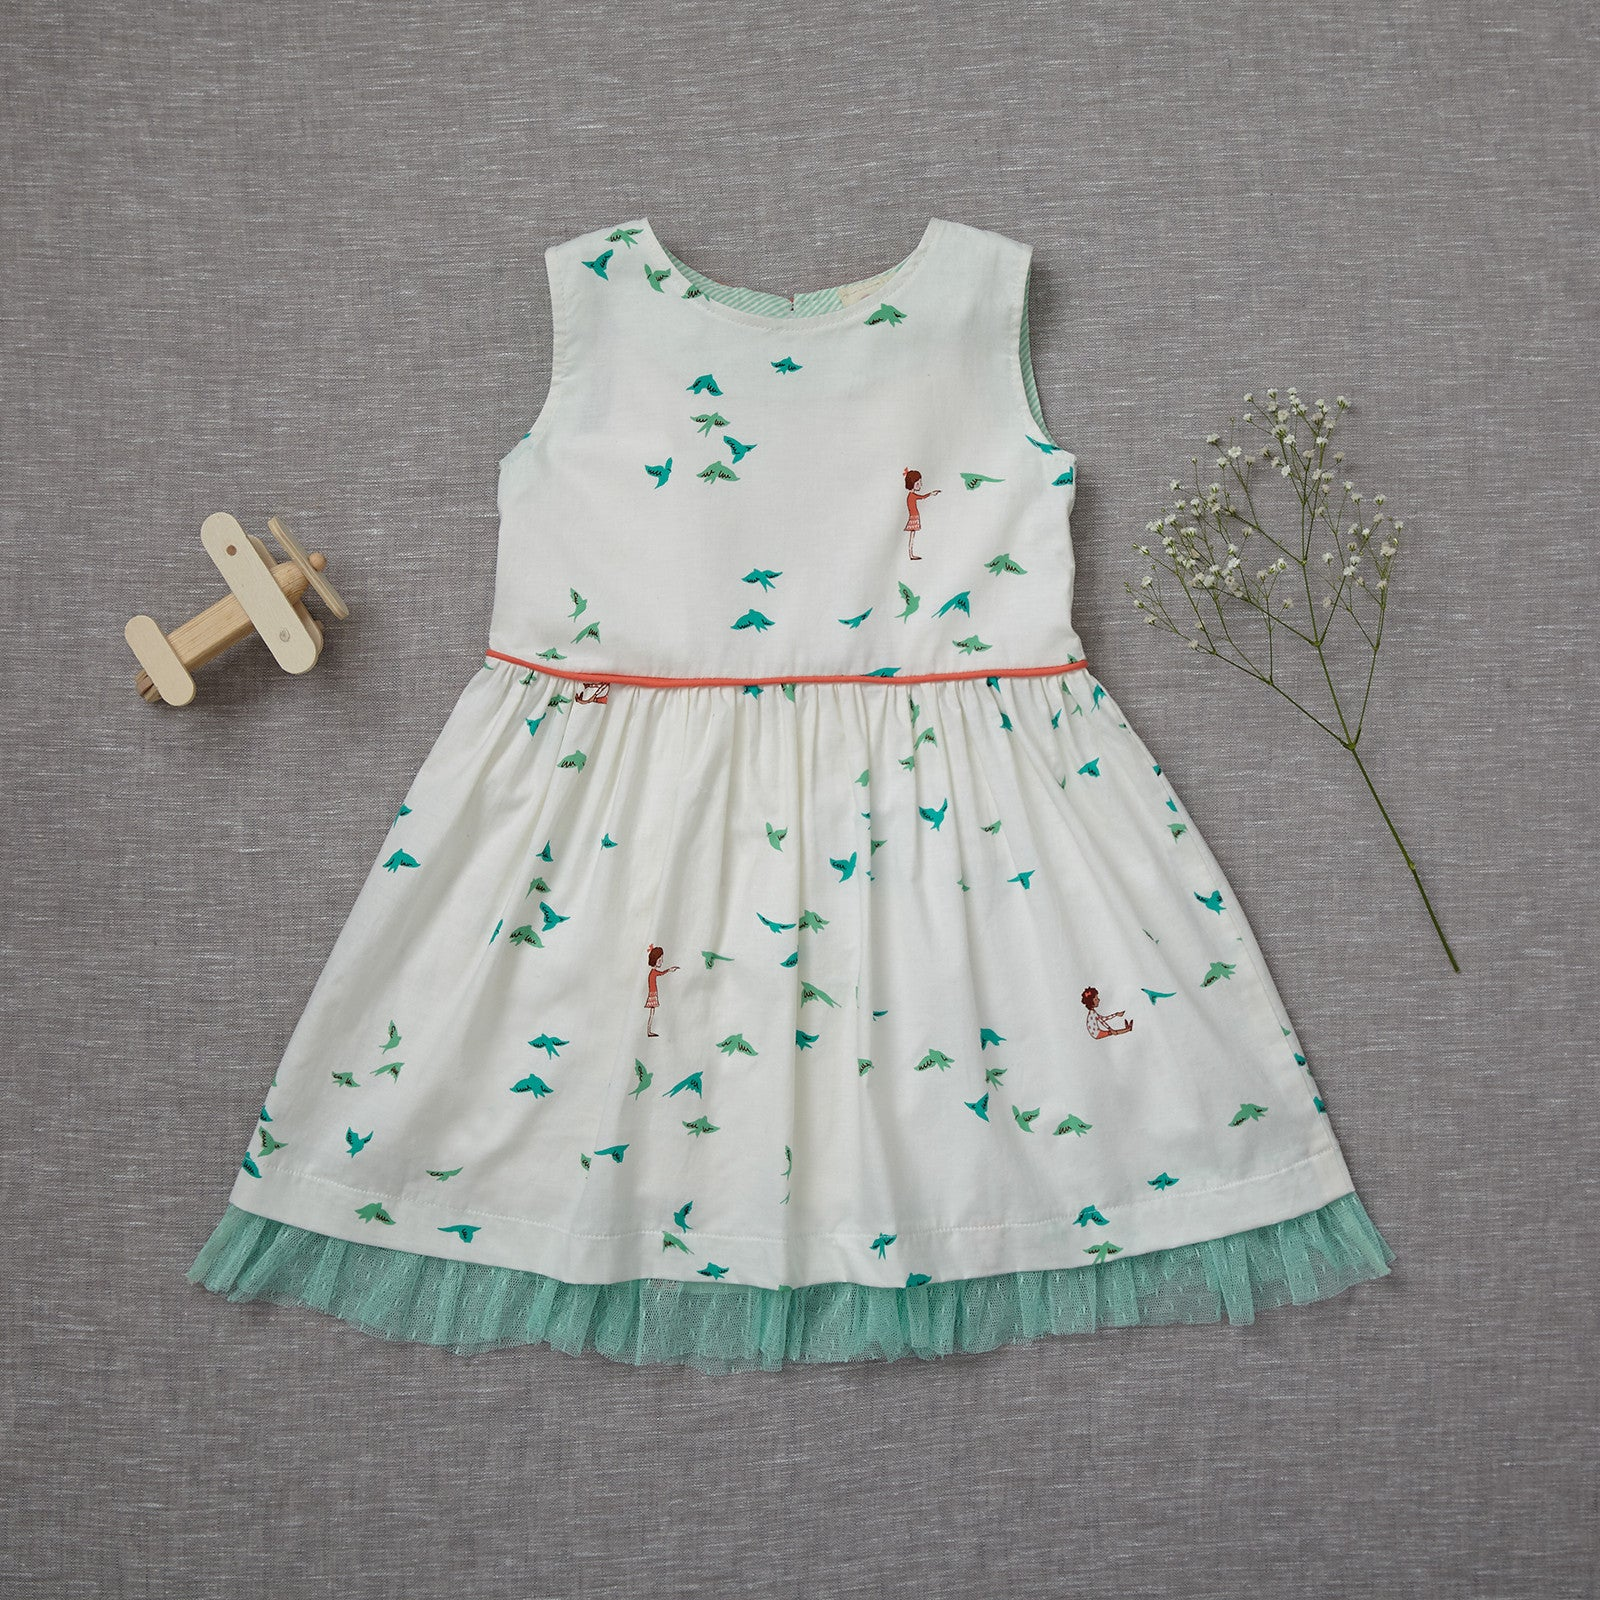 Curtsy Dress - Flockingbirds (RARE EDITION) (Size 4T Only)